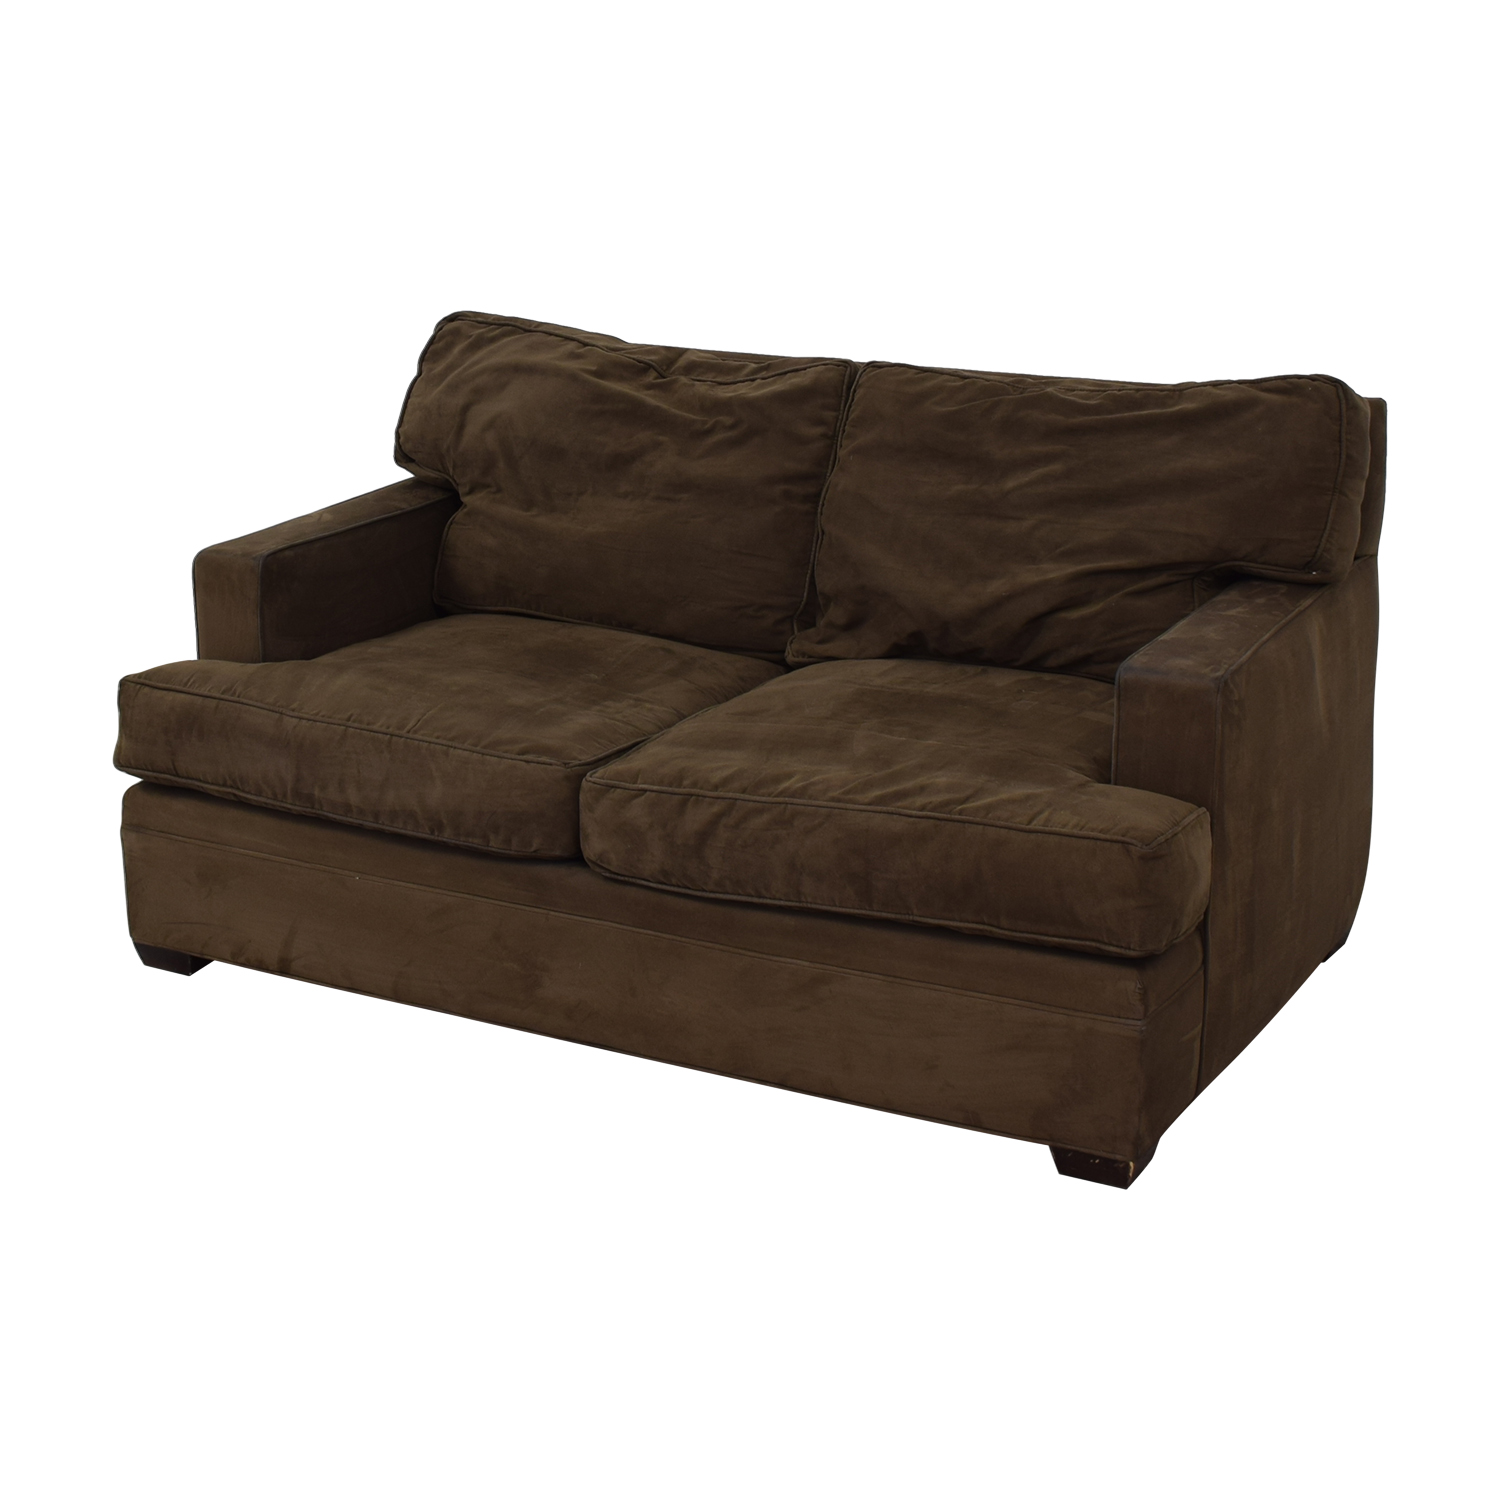 shop Crate & Barrel Brown Suede Loveseat Crate & Barrel Sofas